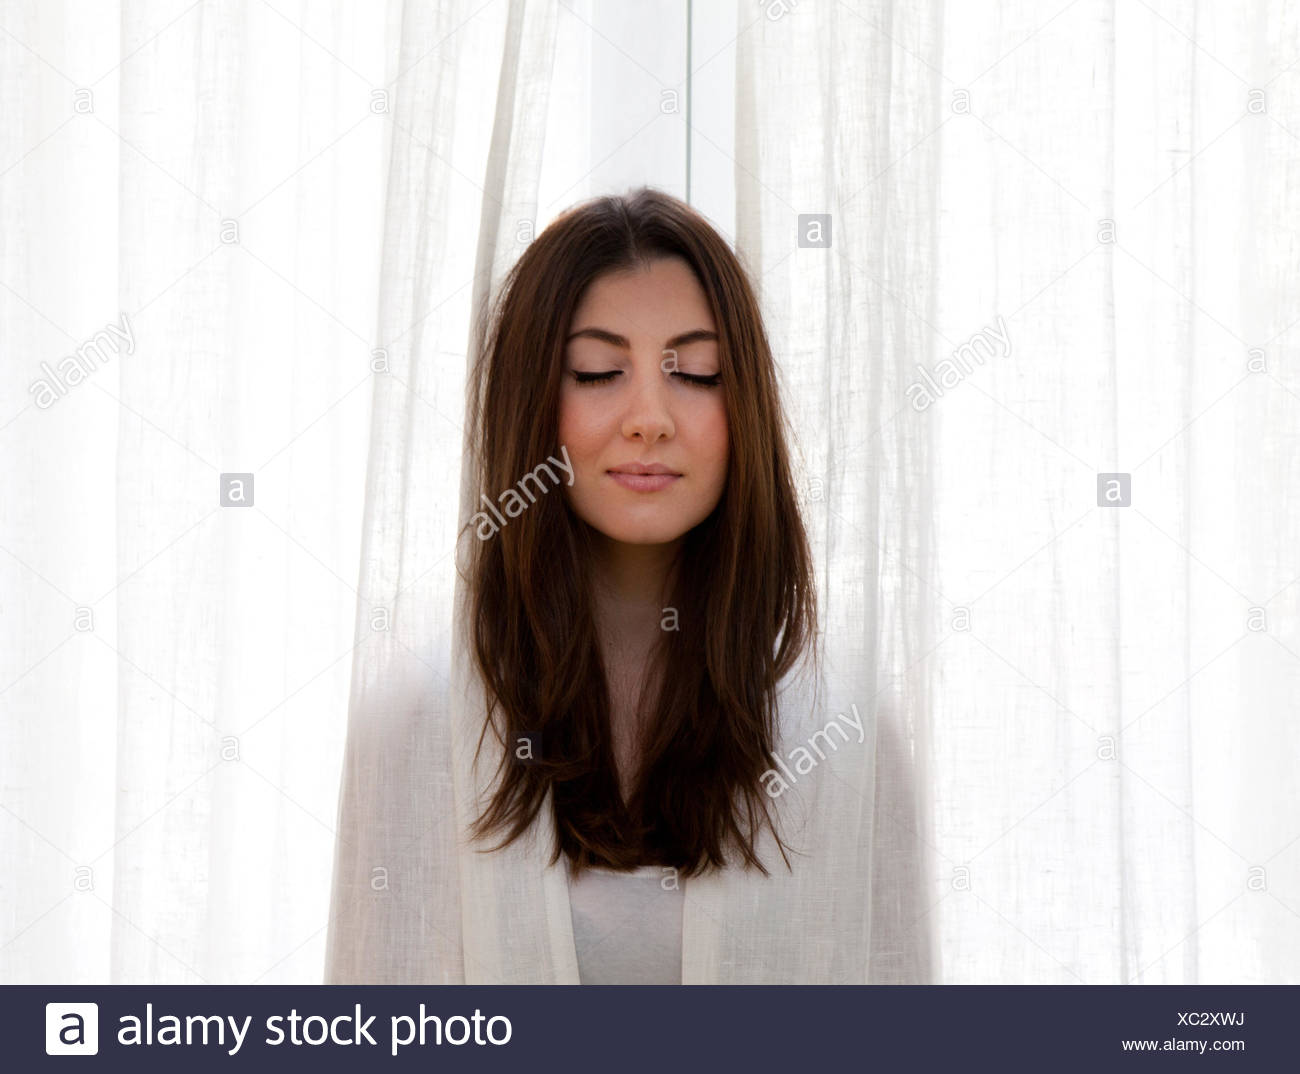 Young adult woman poking head out of curtains, eyes closed - Stock Image